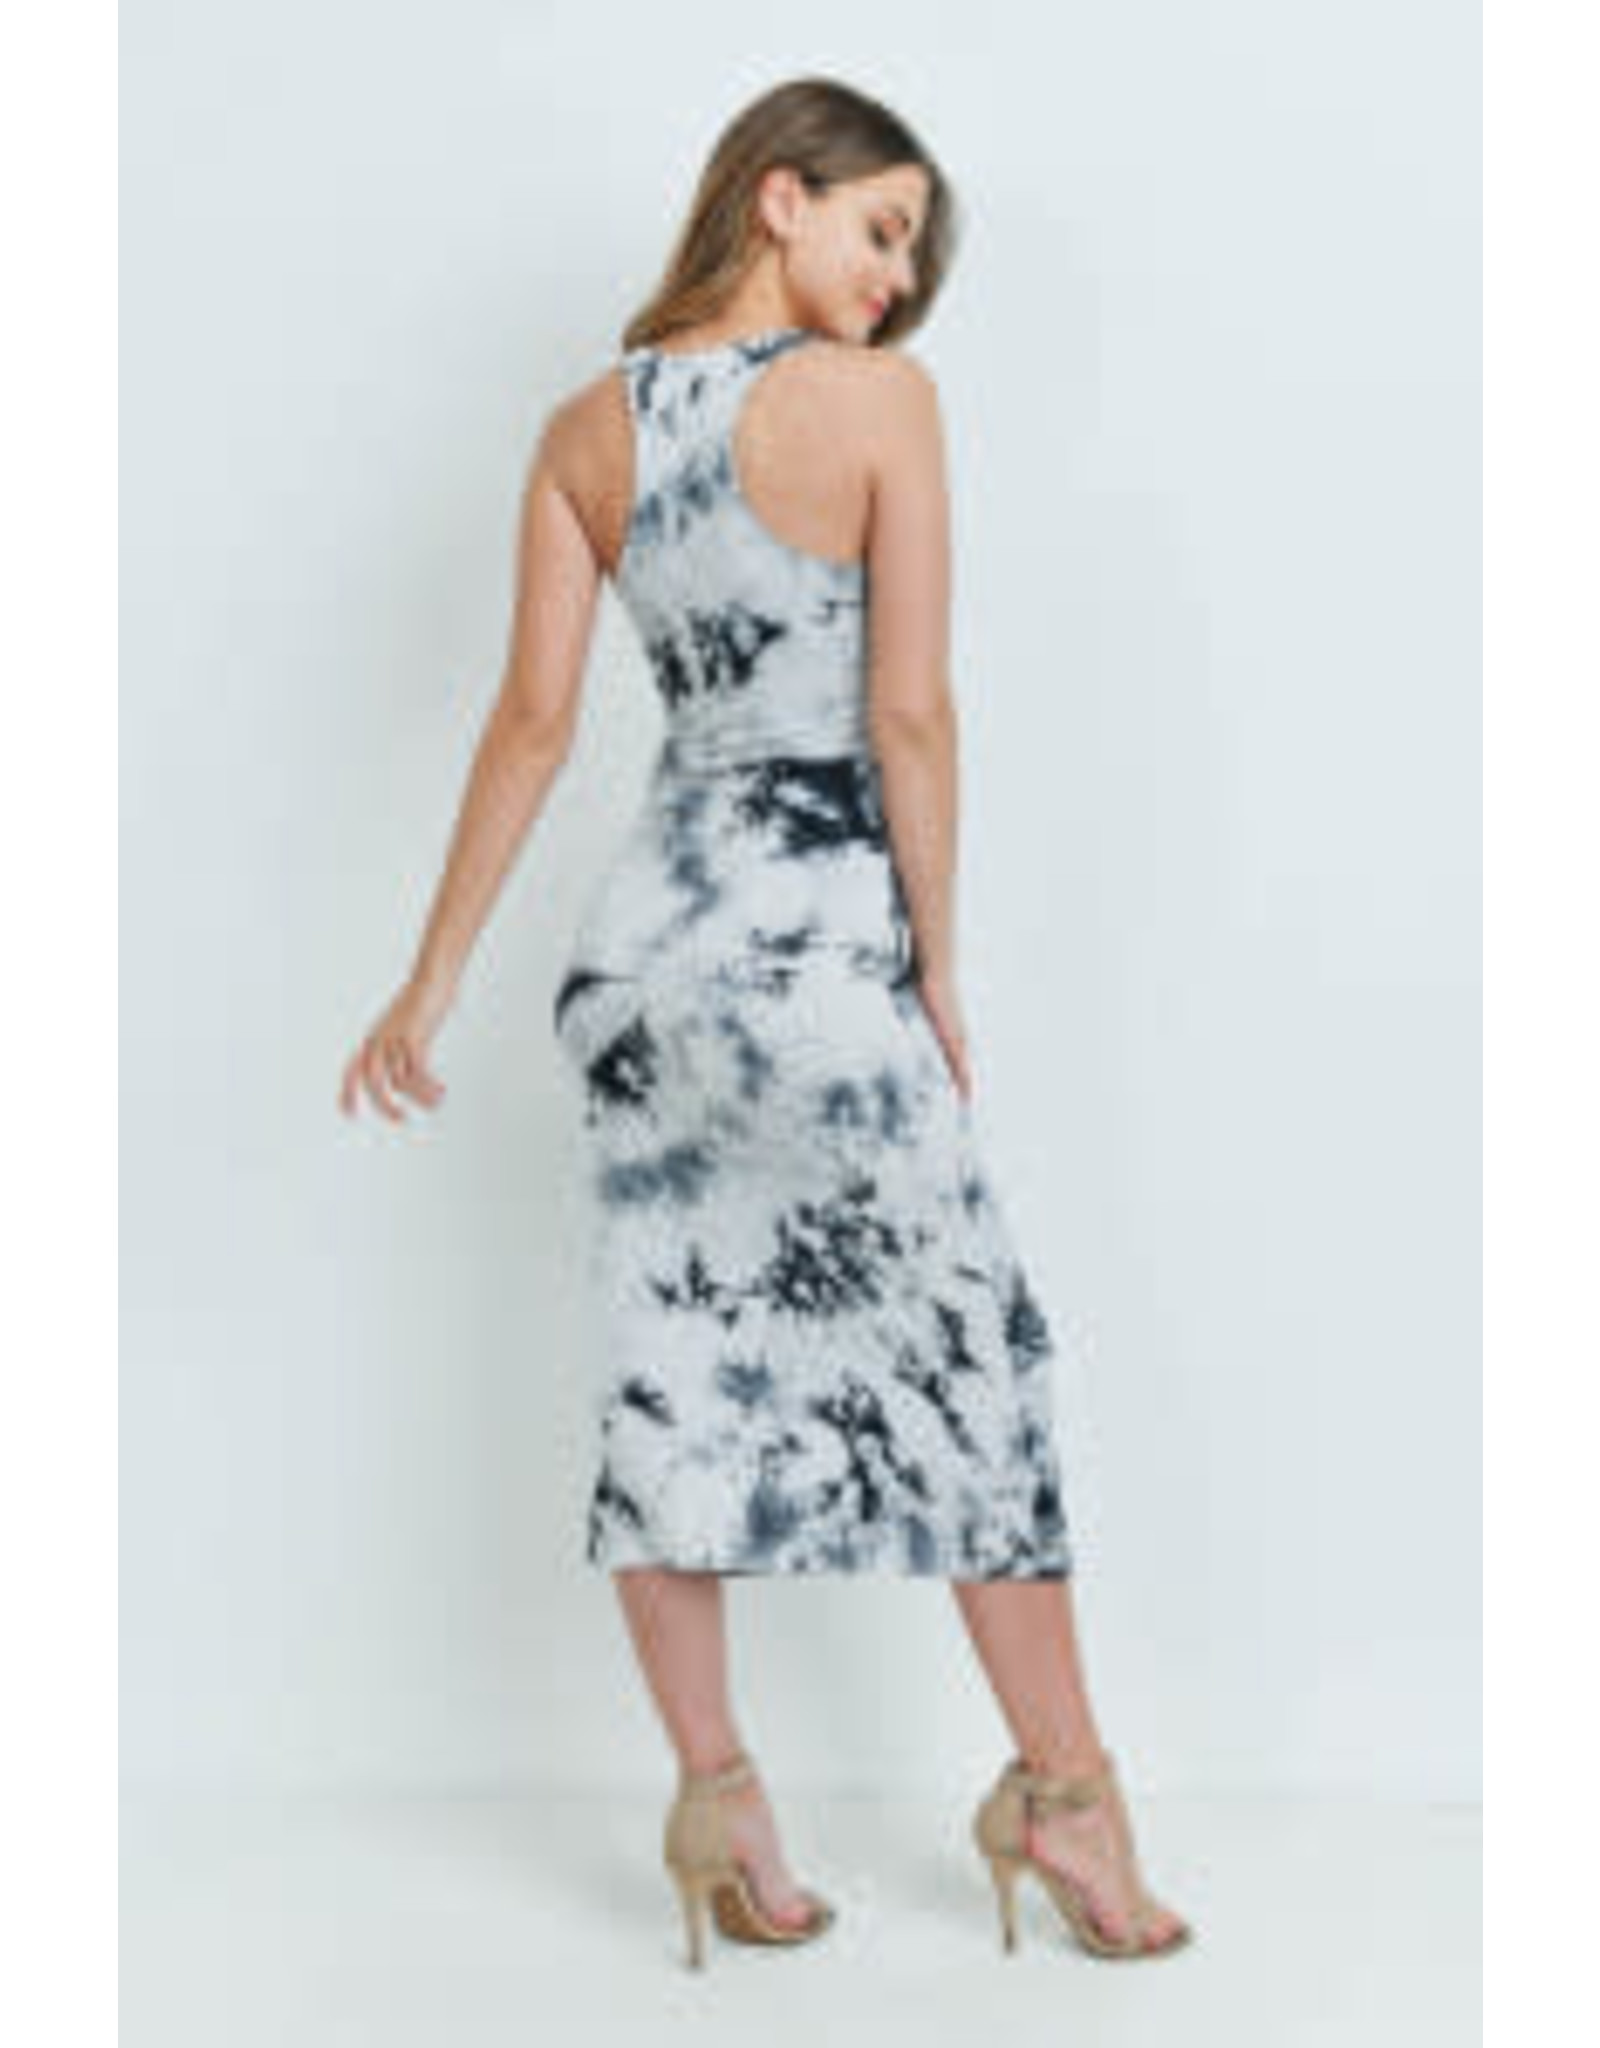 White and Black Tie Dye Racerback Dress